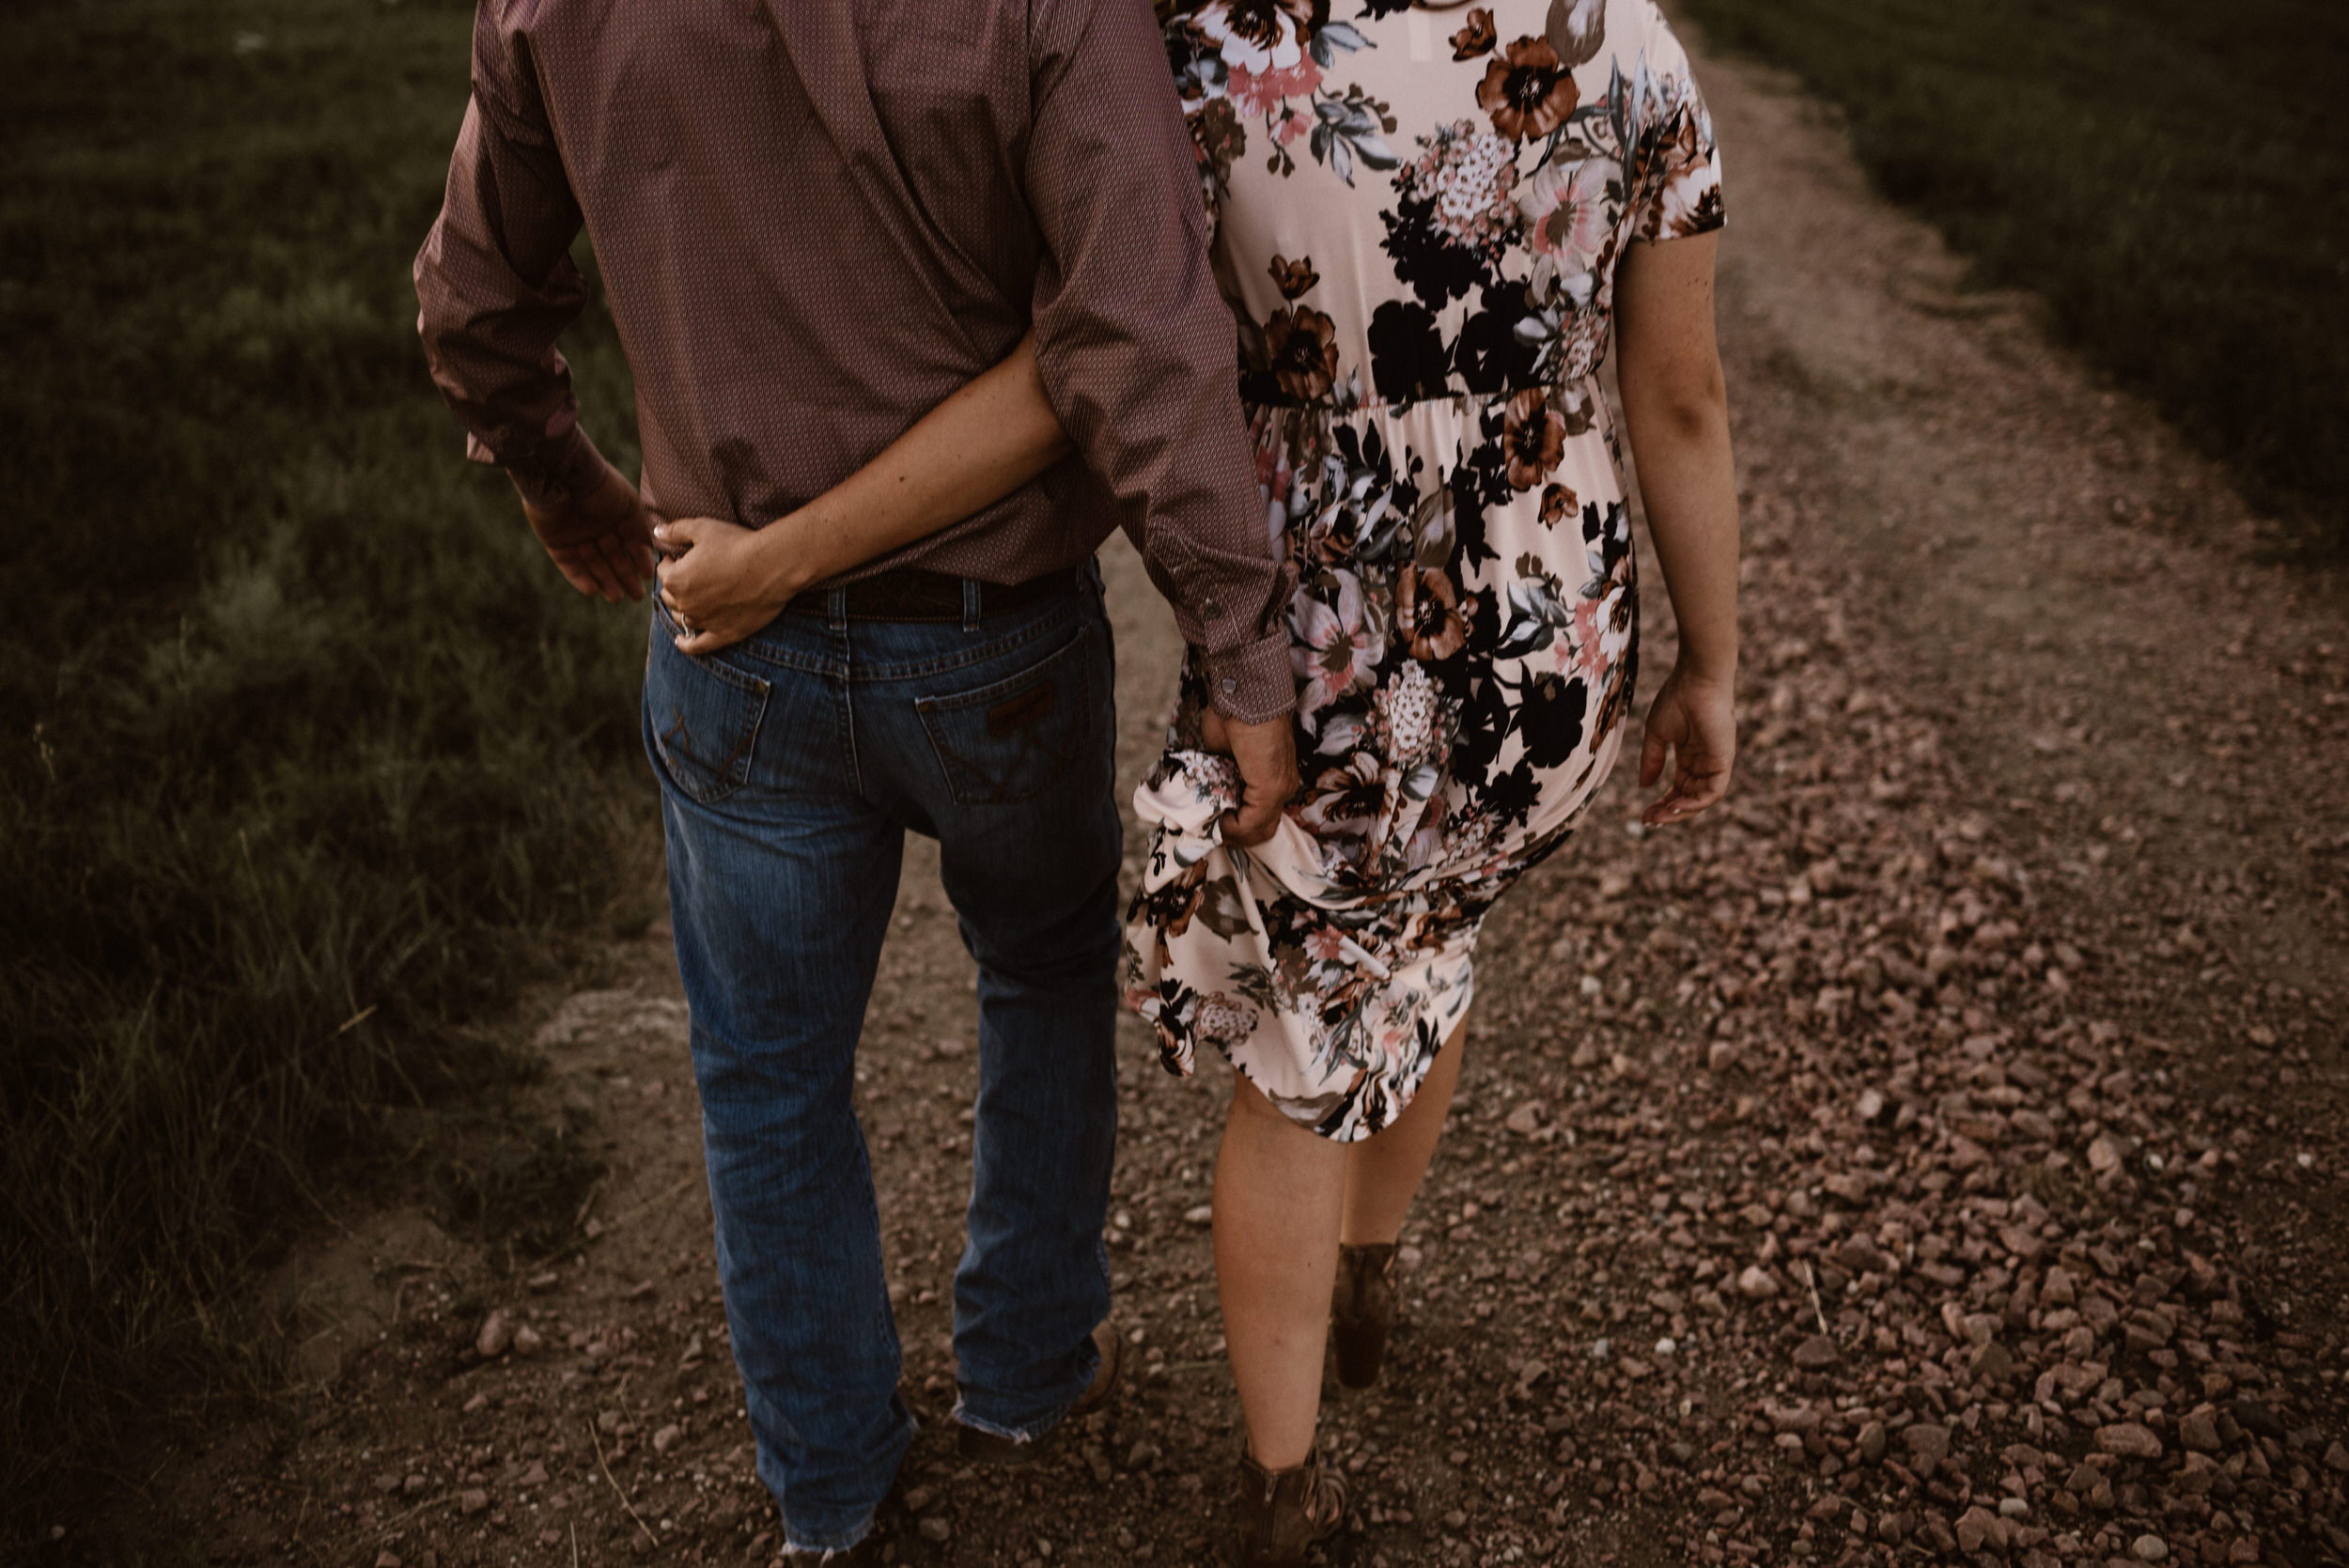 Lynch Nebraska Engagement Session Kaylie Sirek Photography 15.jpg